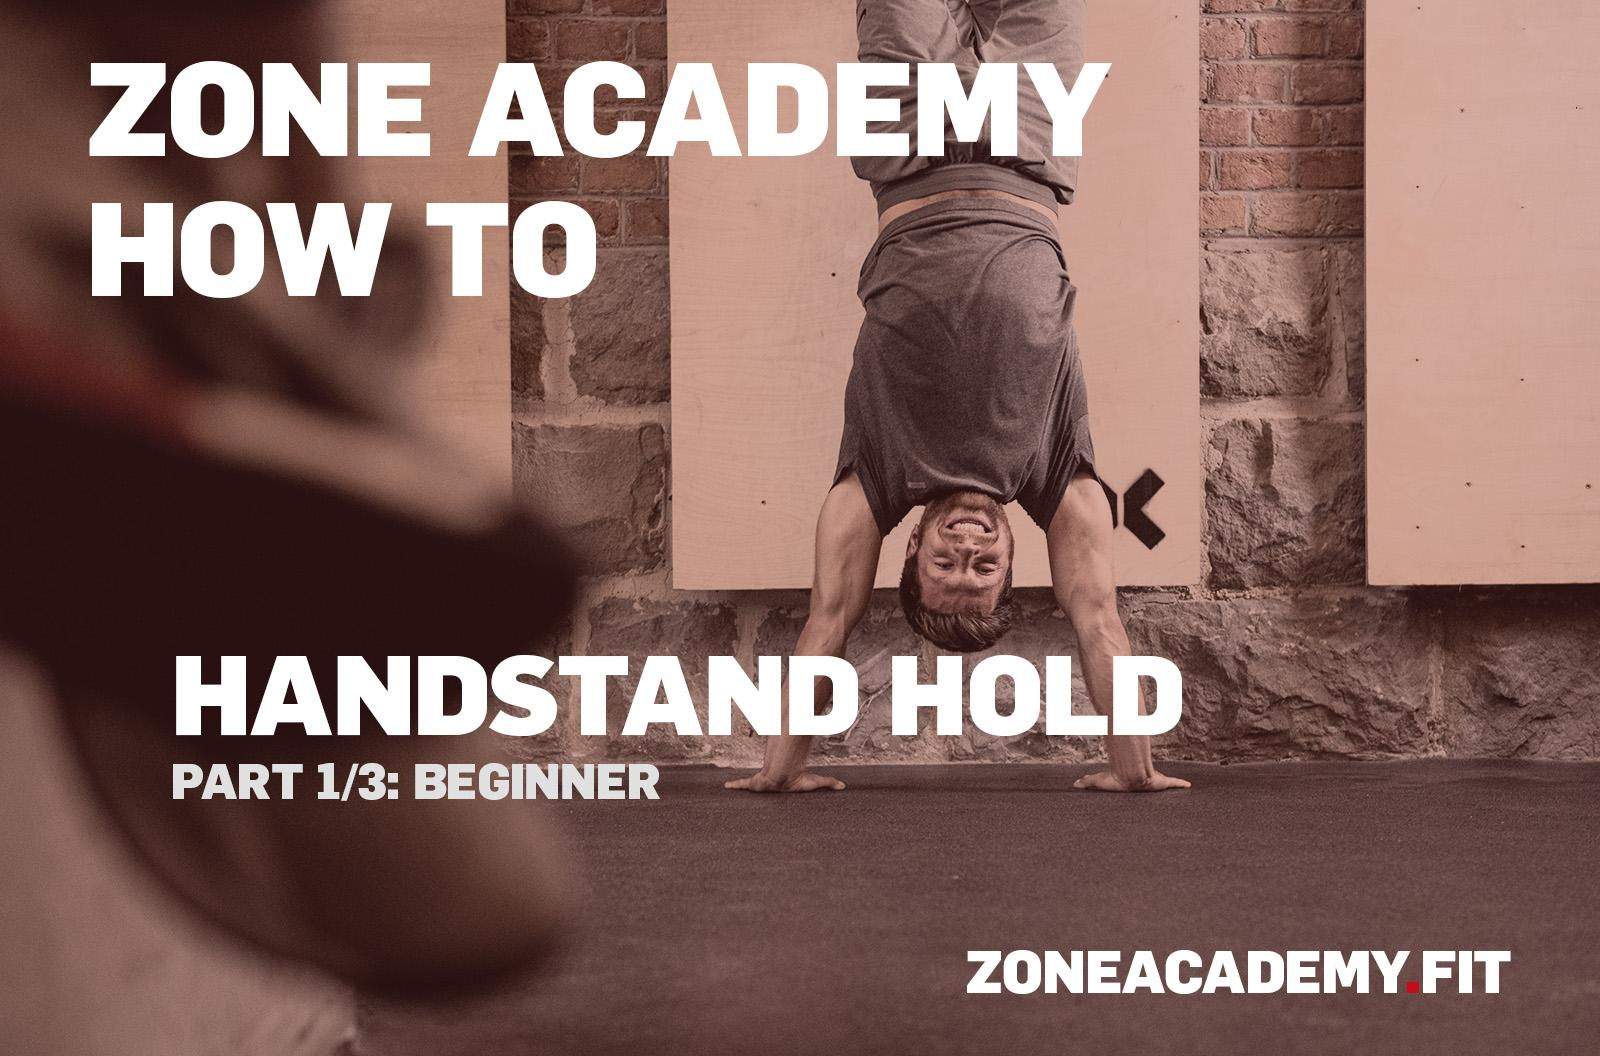 HOWTO HANDSTAND HOLD